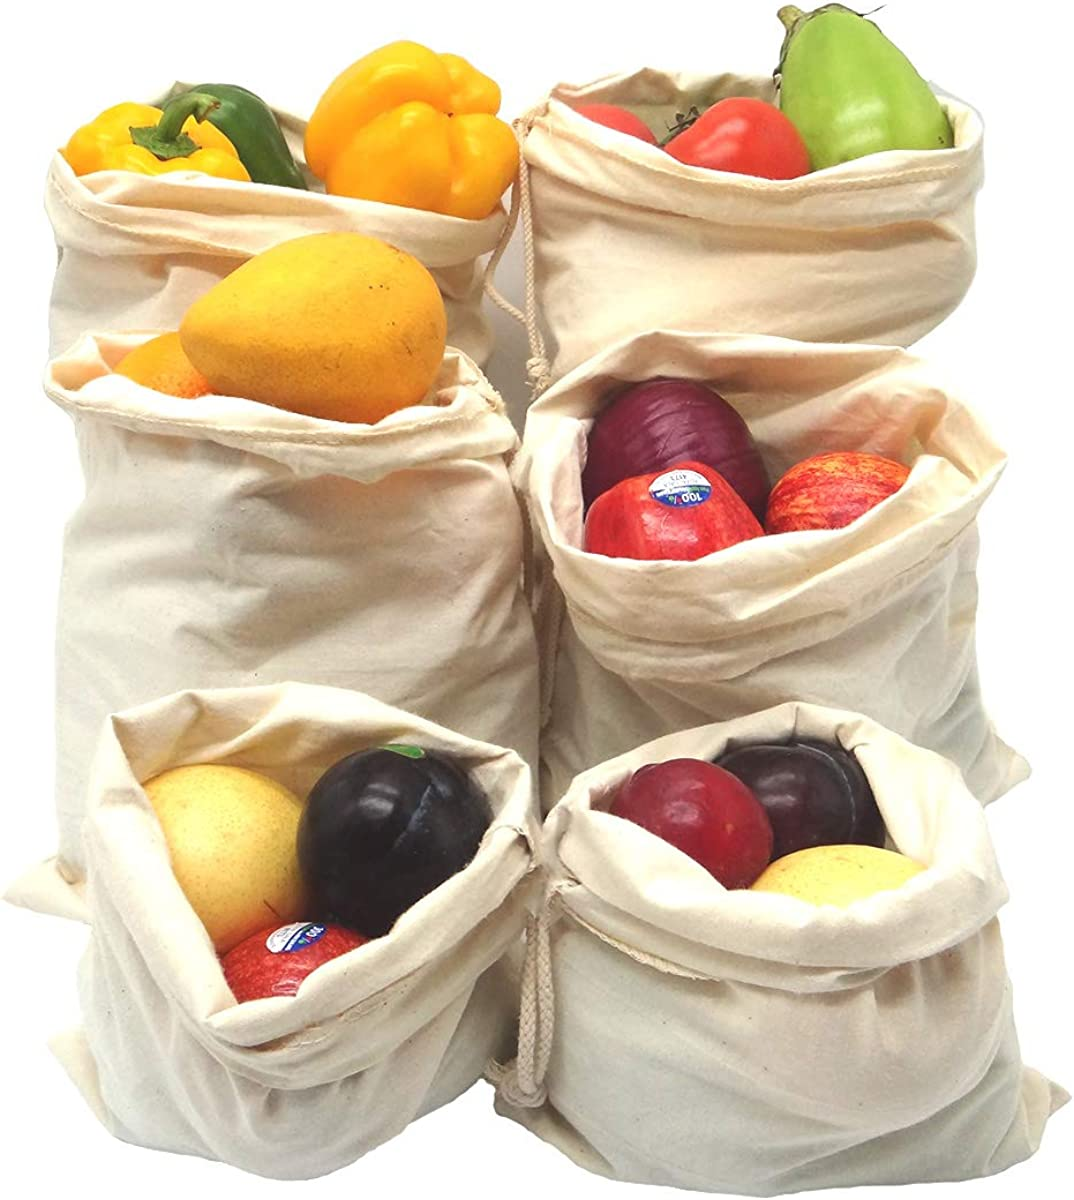 AKLVBL Packaging Bags of Textile Material, Reusable Produce Bags , Cotton Vegetable Storage Bags, Cloth Bag with Drawstring, Food Storage Bags, Canvas Bags, Portable Toy Storage Bag